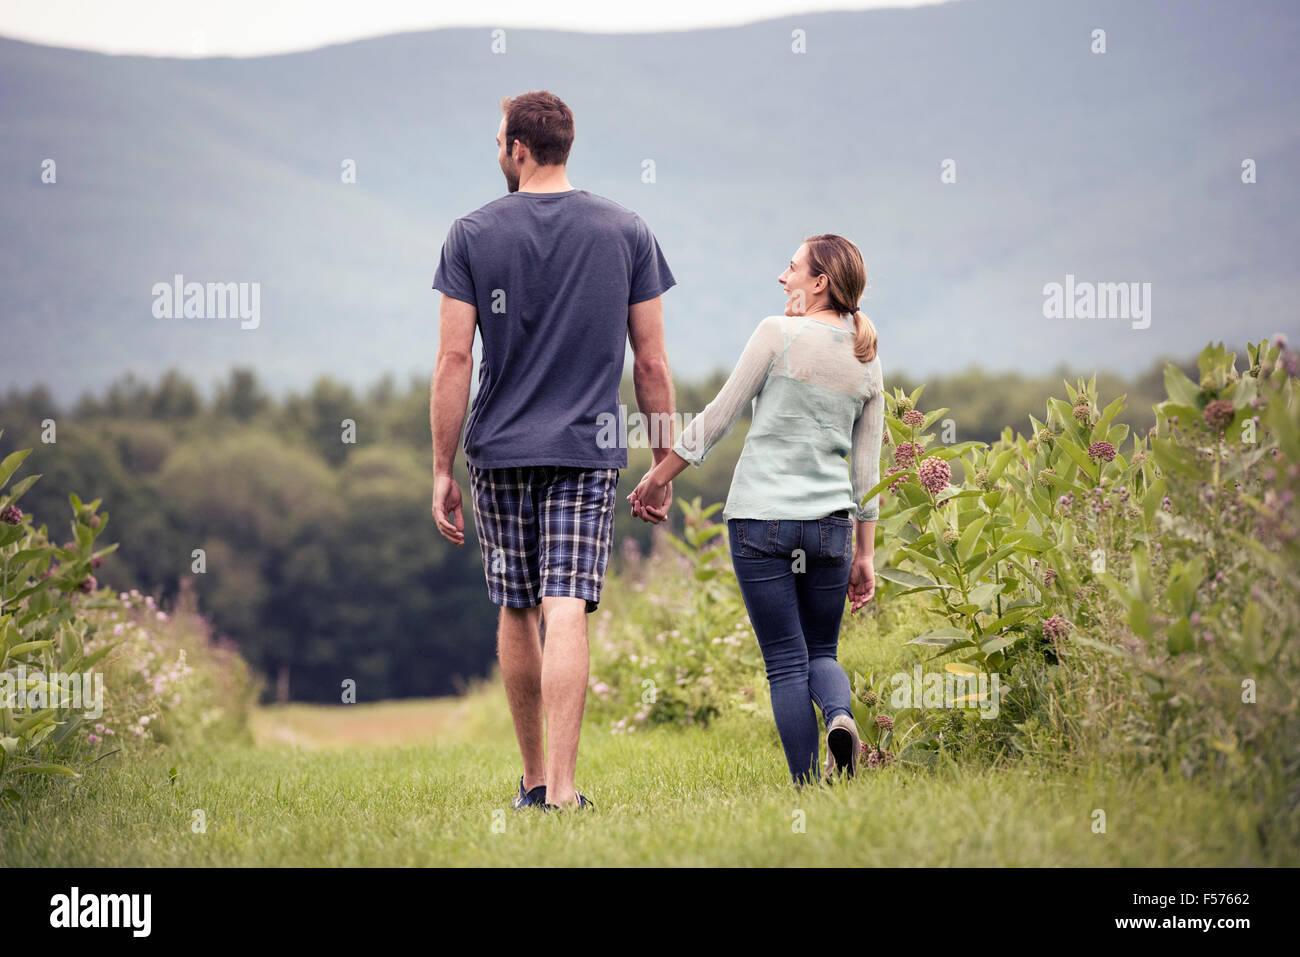 A couple, man and woman walking through a meadow holding hands. Stock Photo